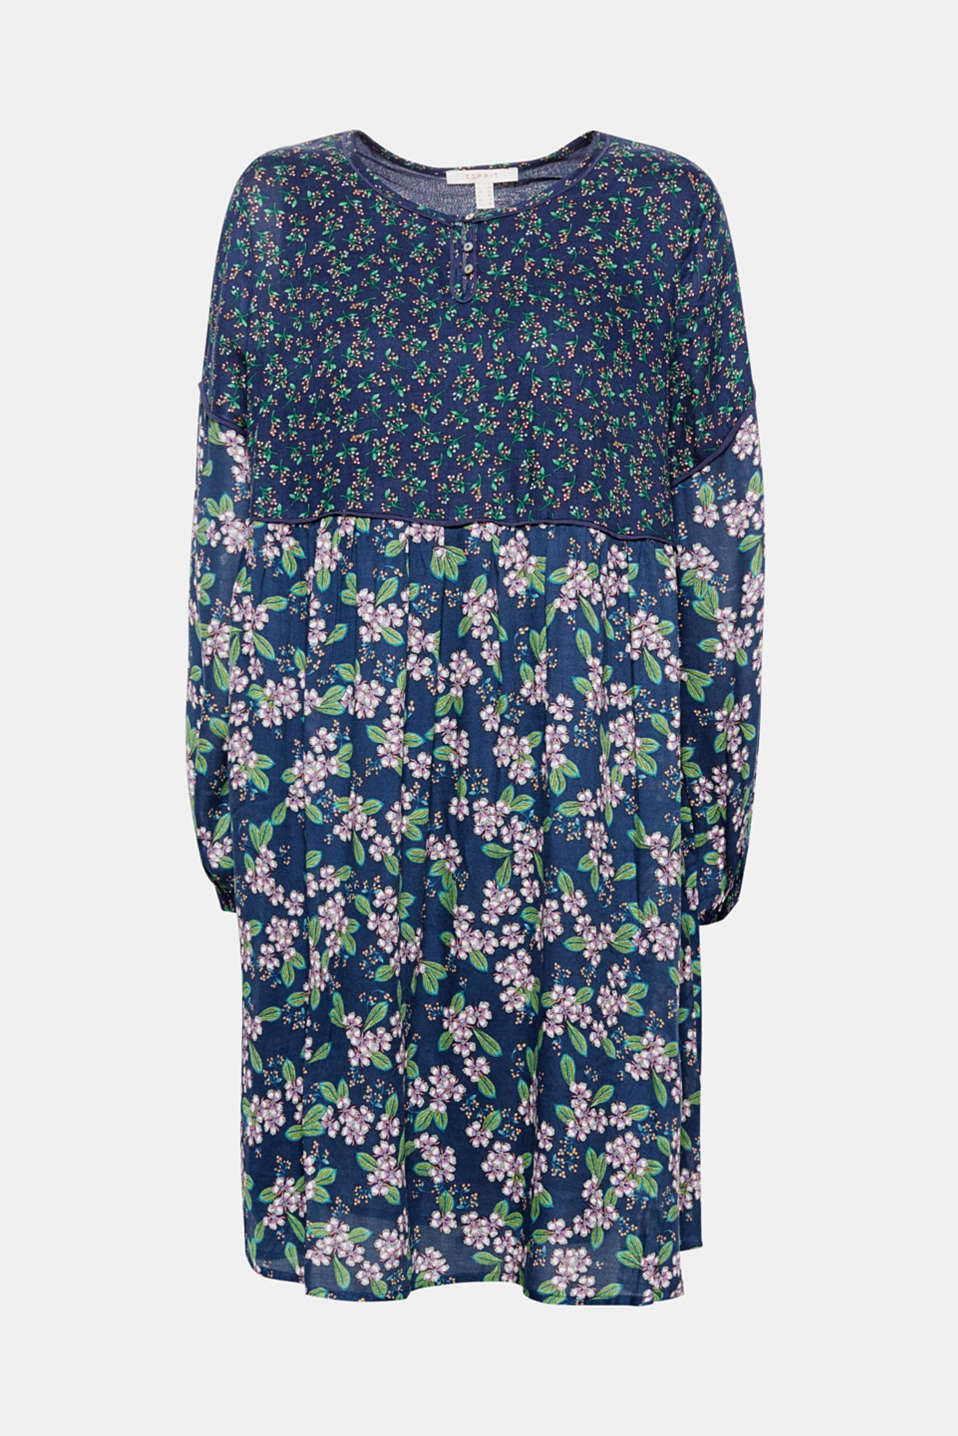 This tent dress in flowing fabric with various floral prints is lightweight and swirling!